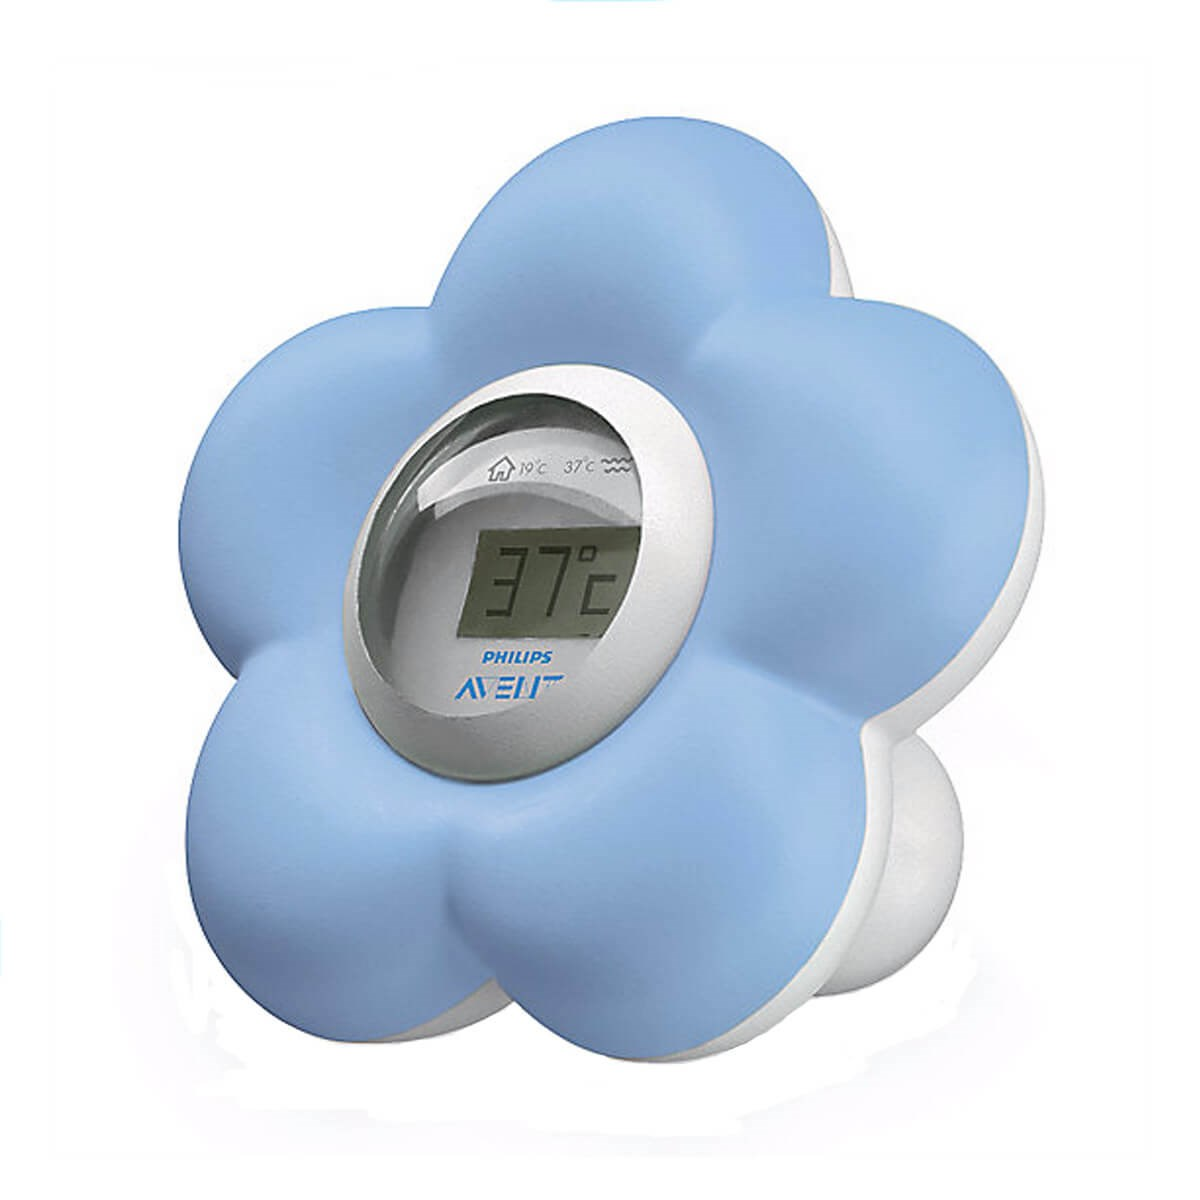 Avent Digital Bath and Bedroom Thermometer